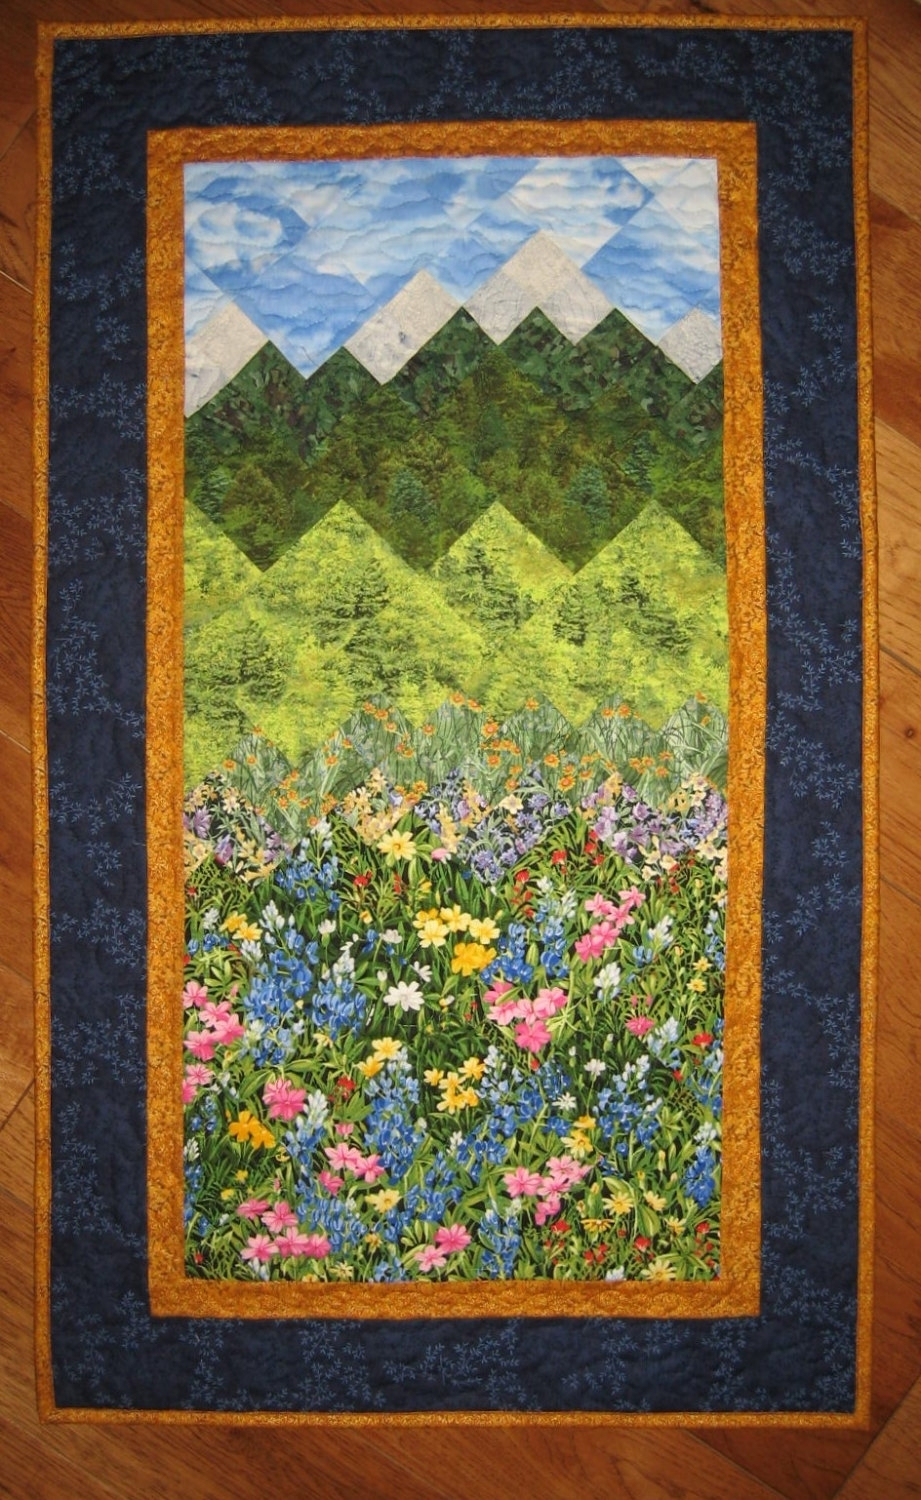 Summer Flowers And Mountains Art Quilt Fabric Wall Hanging Quilted Within Most Recently Released Quilt Fabric Wall Art (View 14 of 15)